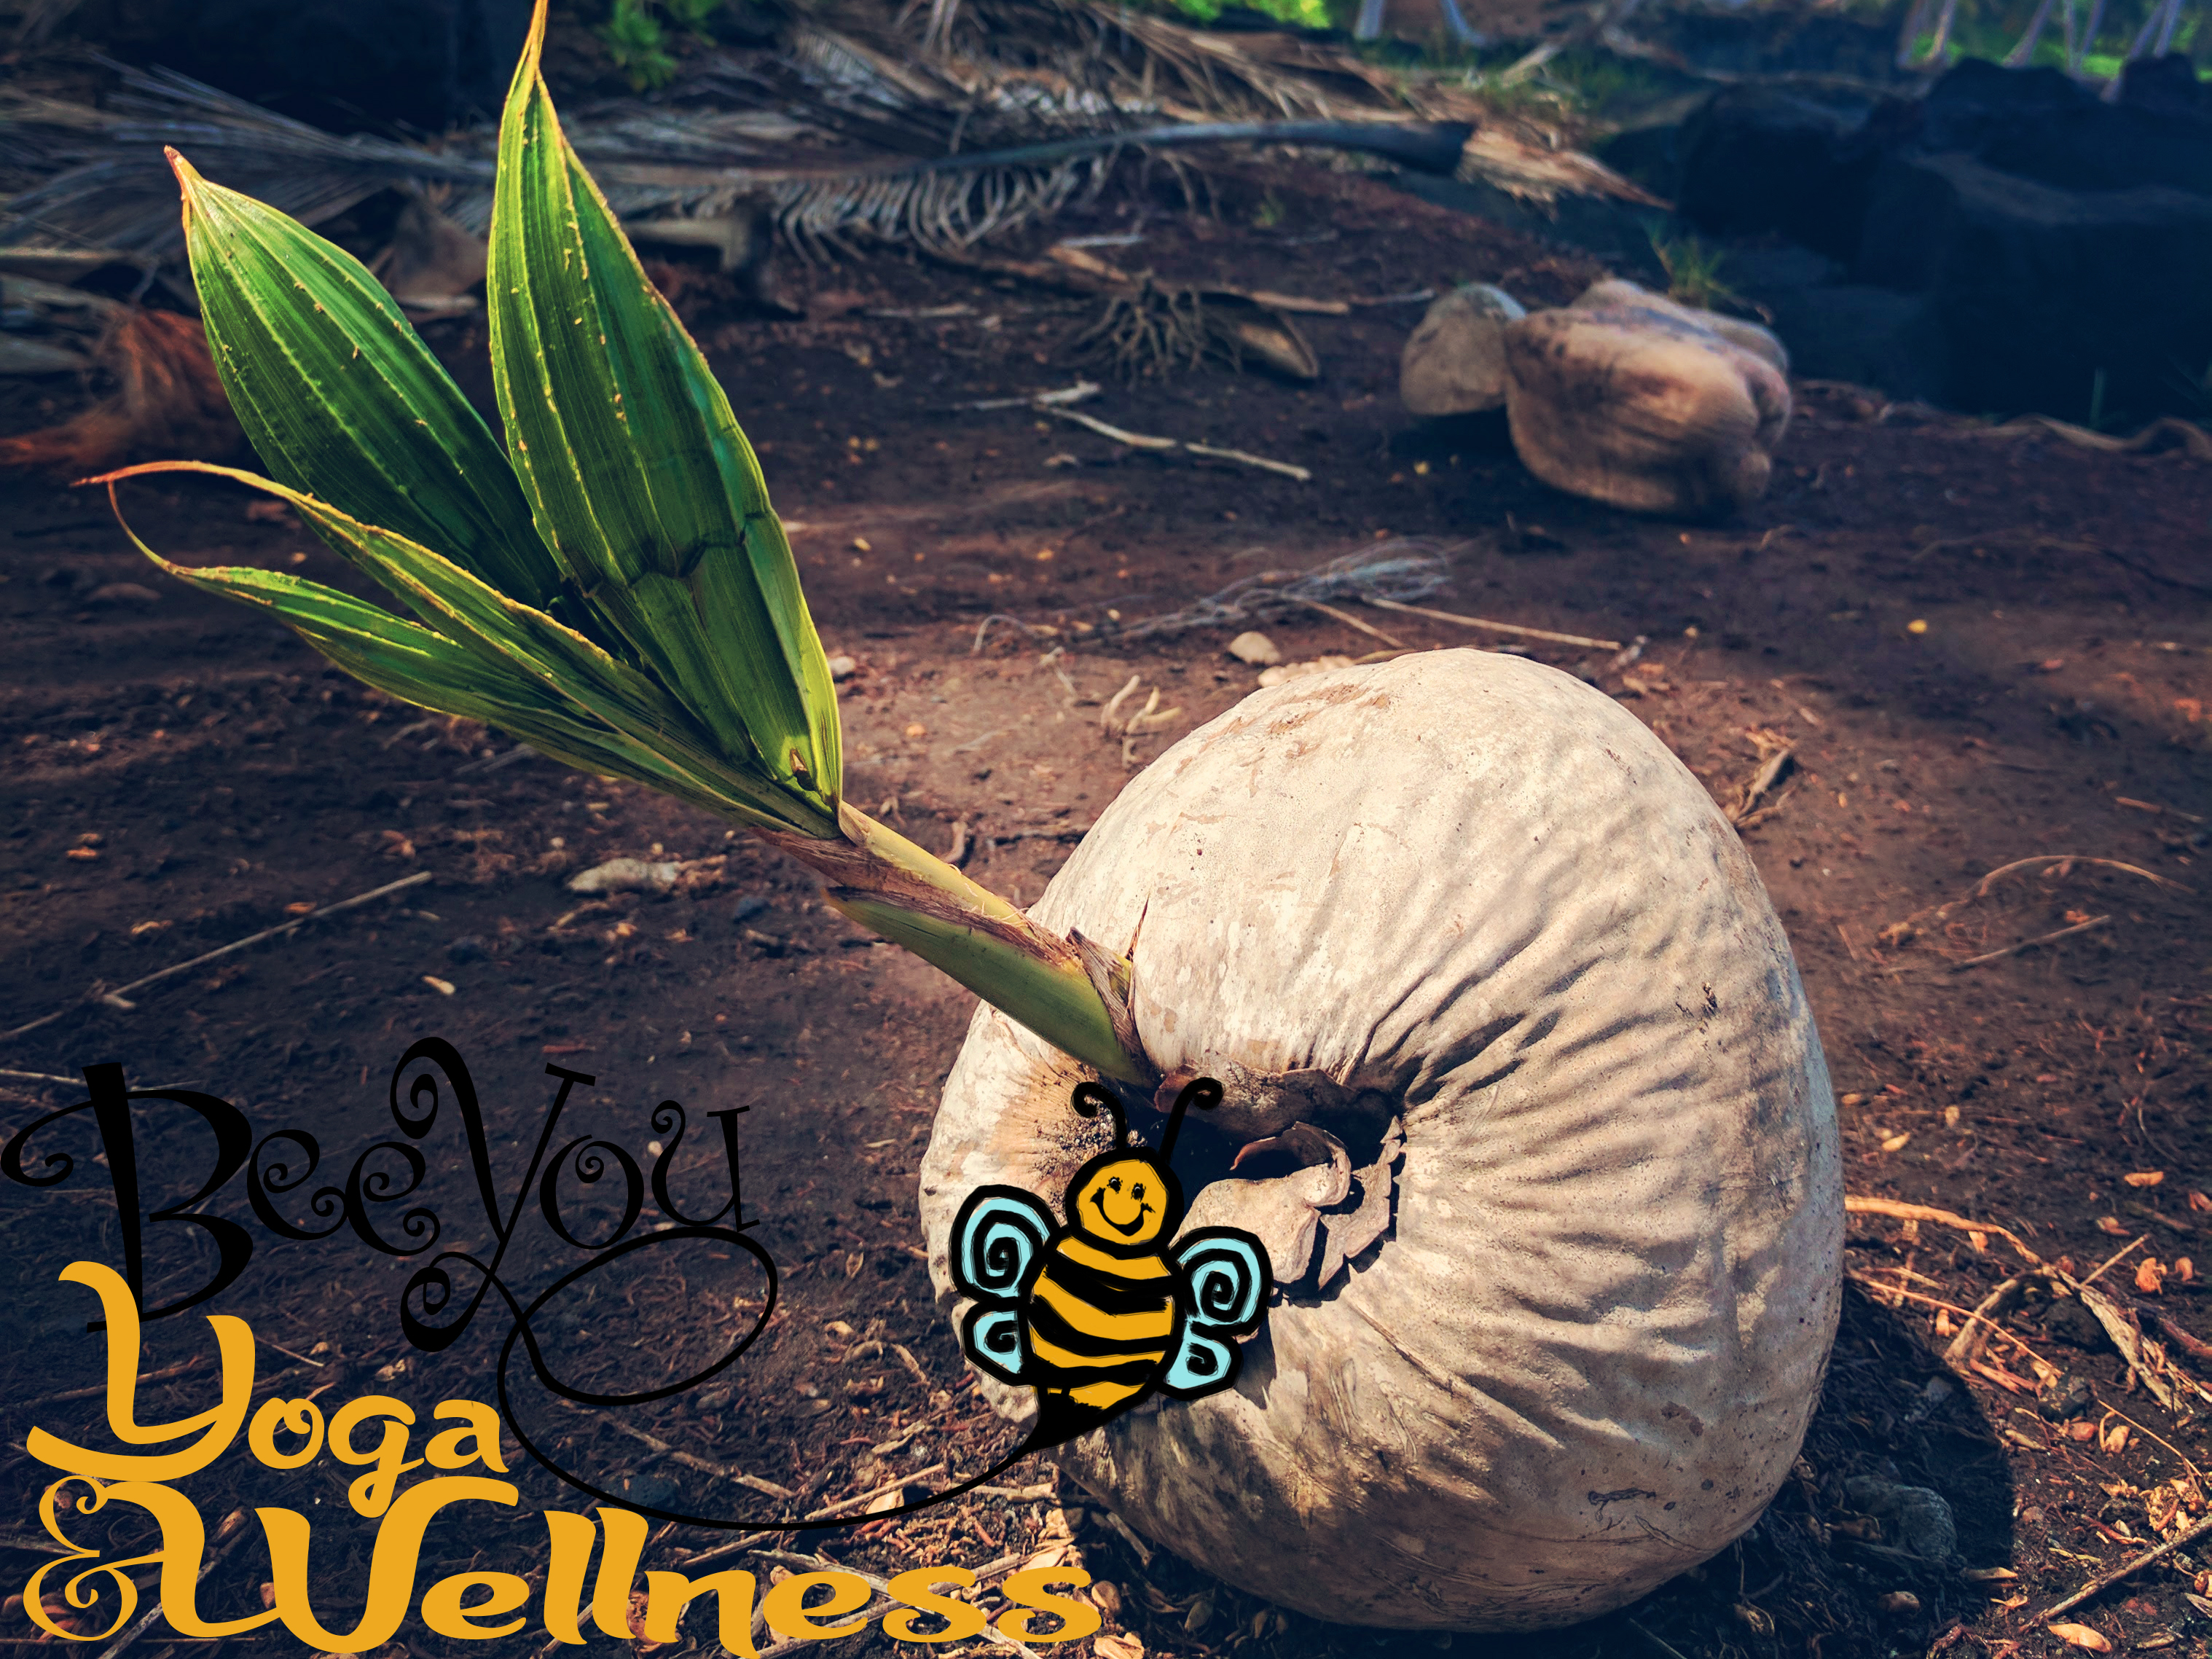 Bee You Yoga and Wellness - Yoga Therapy, Yoga, Yoga for anxiety, Yoga for depression, Yoga for recovery, y12sr, donation based yoga & meditation for everyone, kids yoga, BARRE, Sadie Nardini Yoga Shred Fusion, Full body conditioning, Yoga Nidra, Swedish massage, myofascial release, PSYCH-K, Reiki